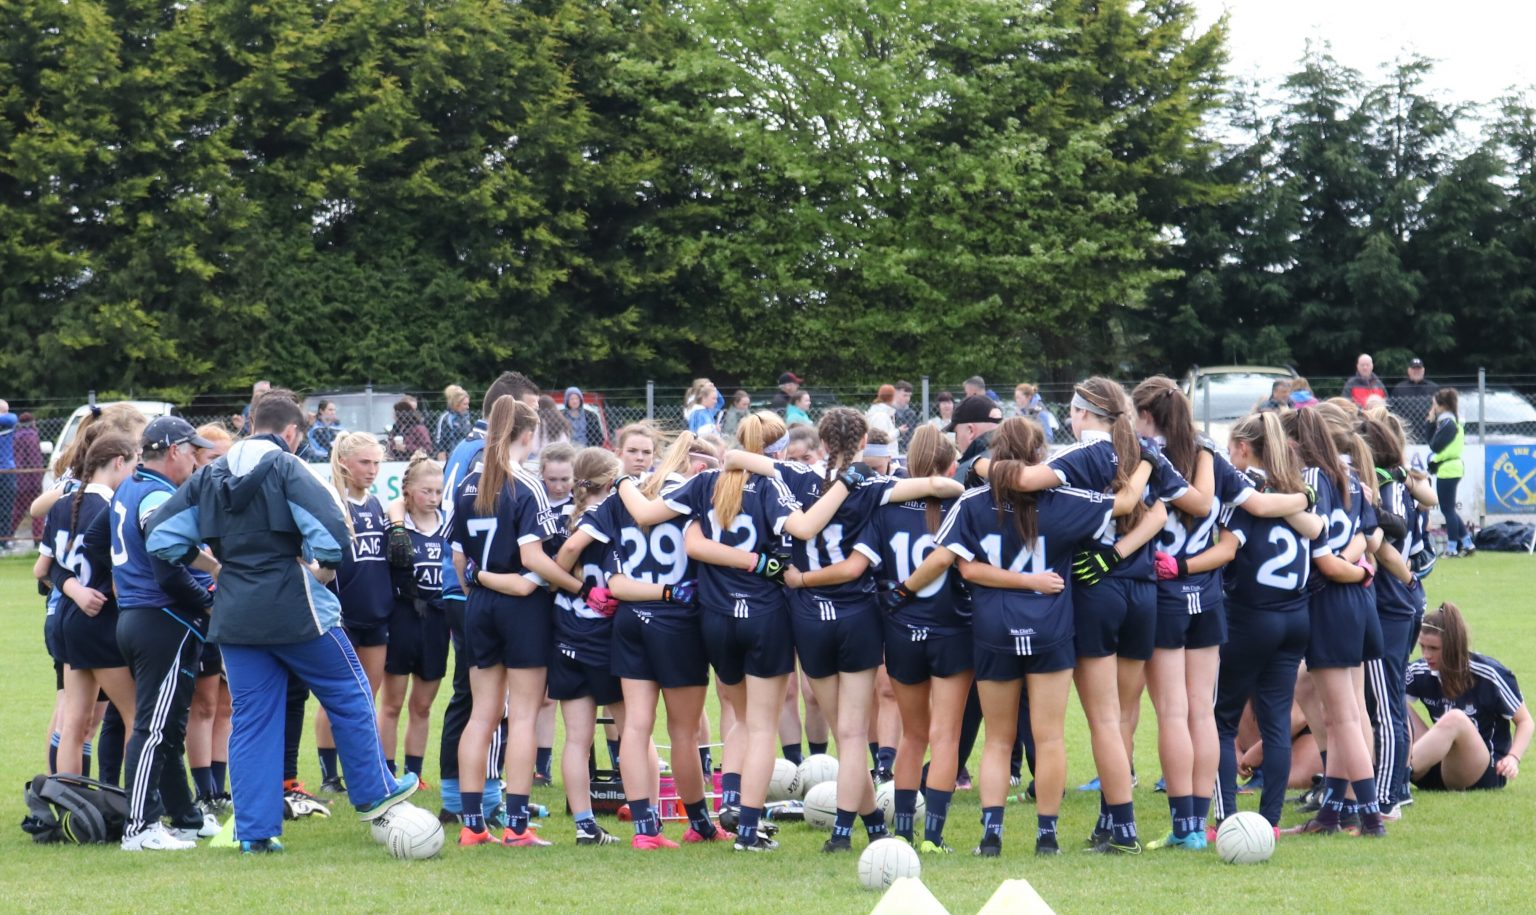 Dublin U16 Ladies Footballers Got Their Leinster Campaign Off To A Winning Start With Victory Over Kildare